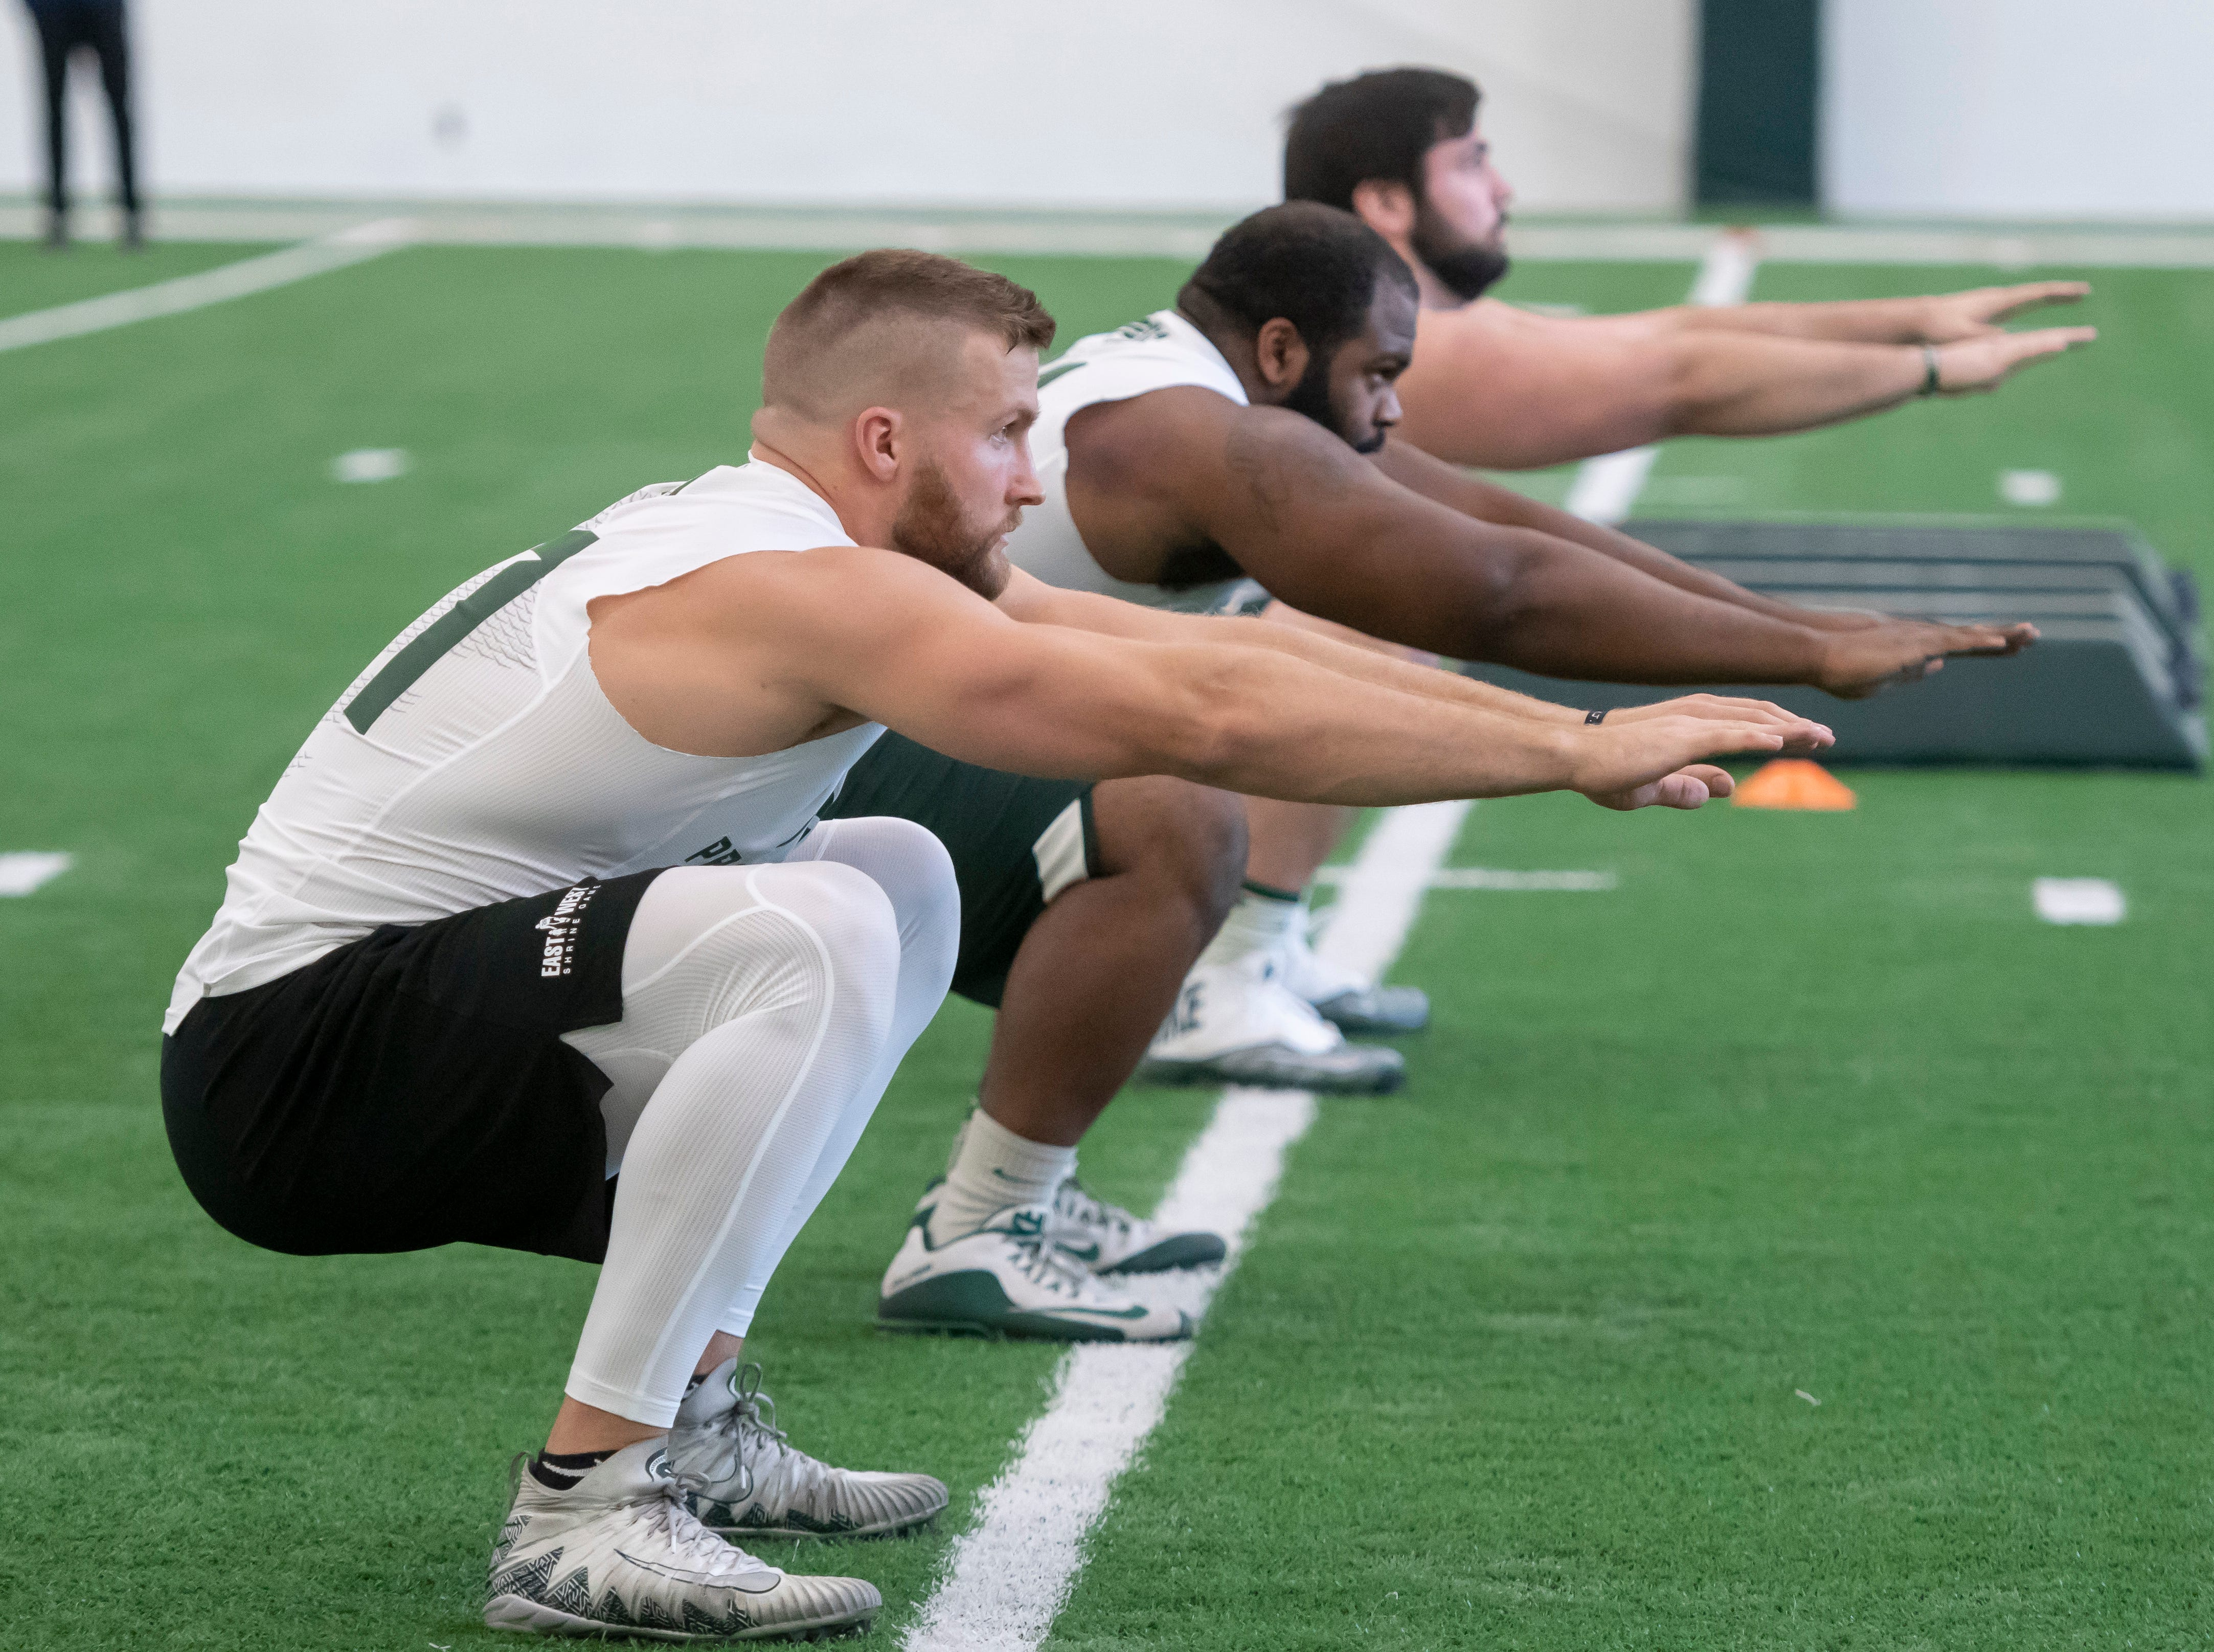 (From left) Michigan State tight end Matt Sokol, defensive tackle Gerald Owens, and offensive lineman David Beedle go through drills.